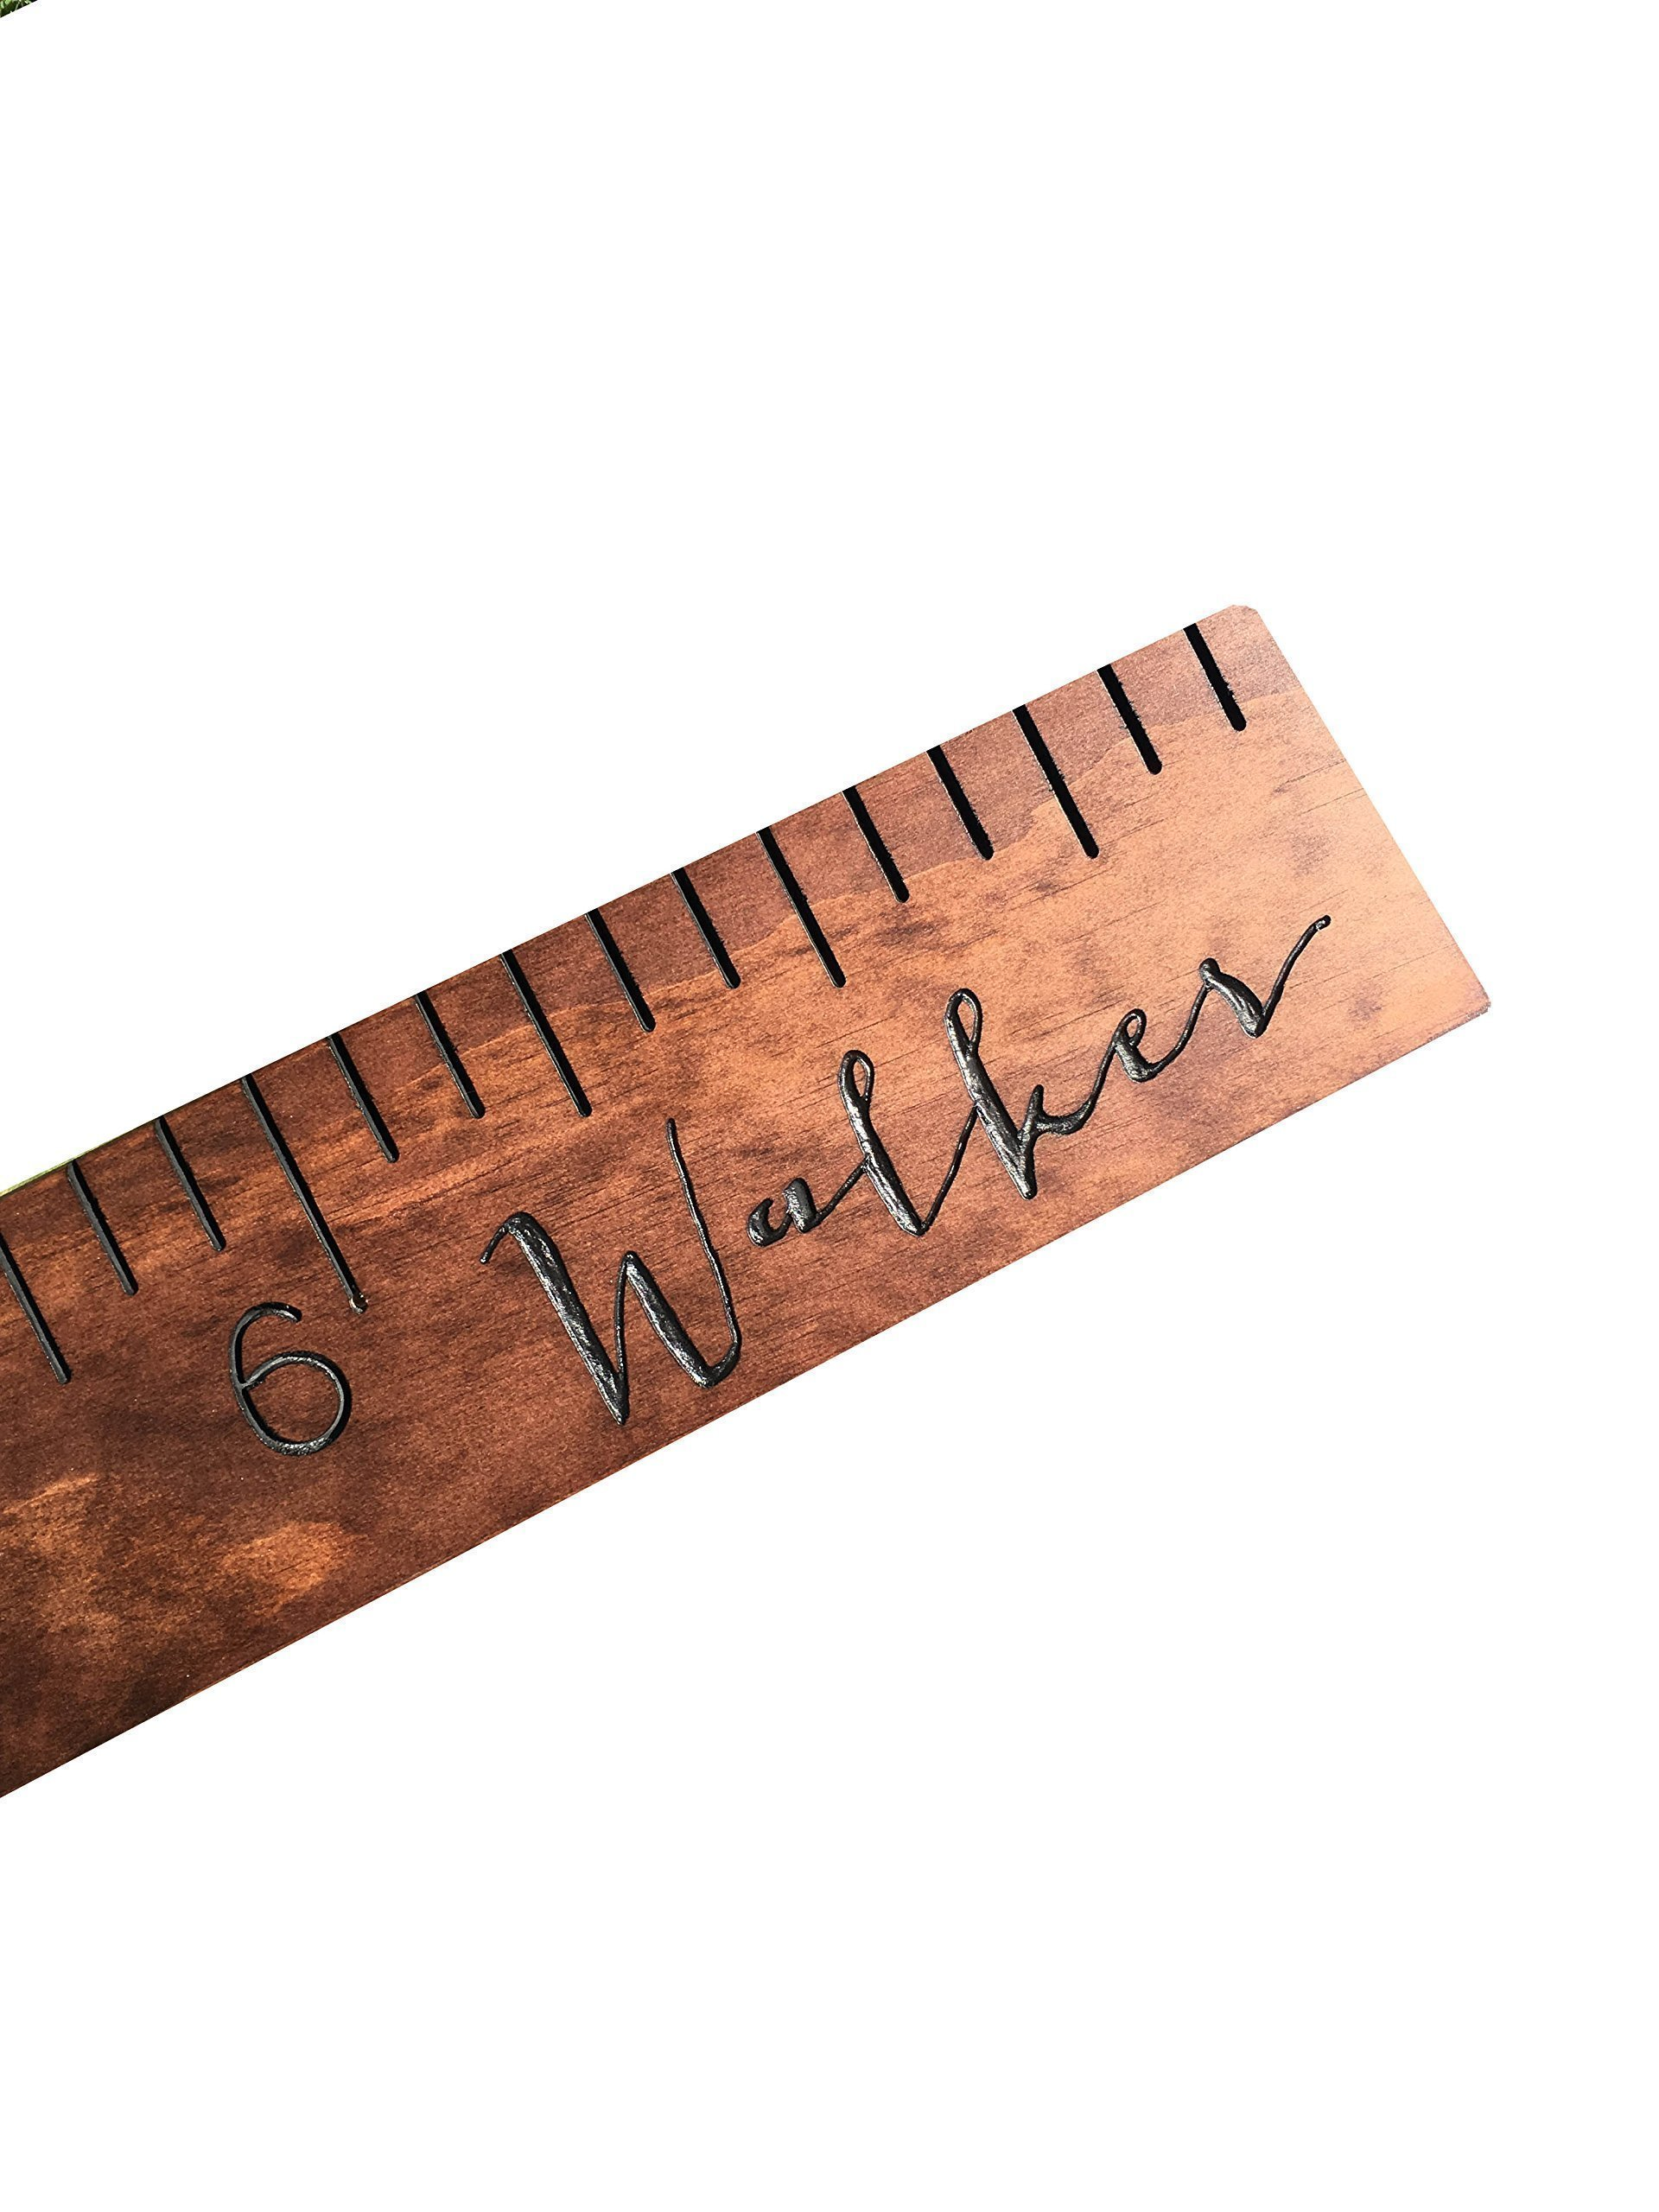 custom engraved calligraphy growth chart, personalized wooden ruler, measuring height stick, routed